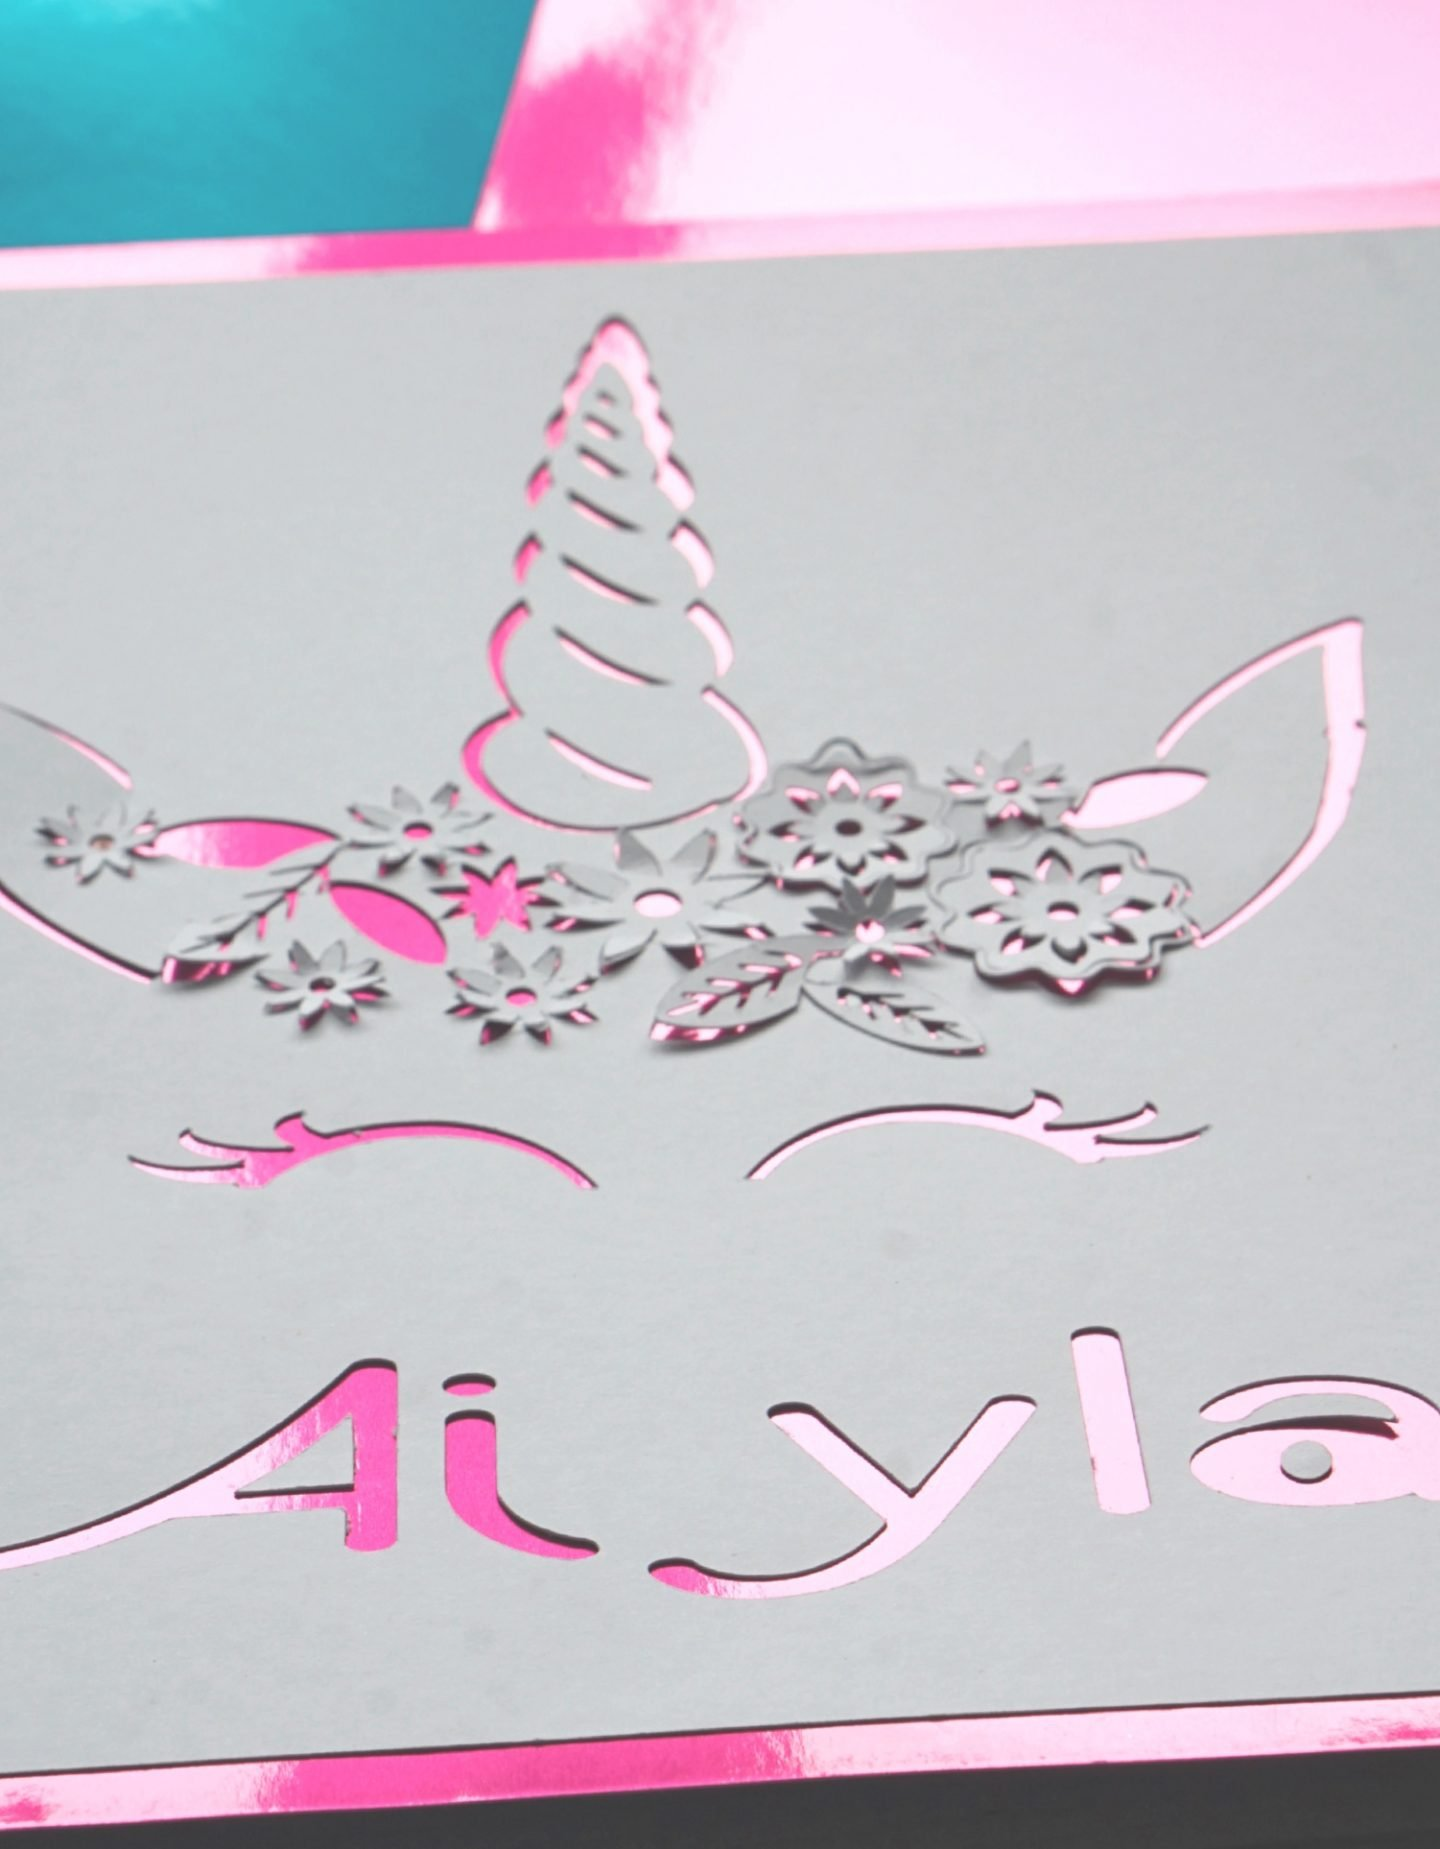 Tutorial for a Unicorn Paper Cut With The Cricut Machine www.extraordinarychaos.com